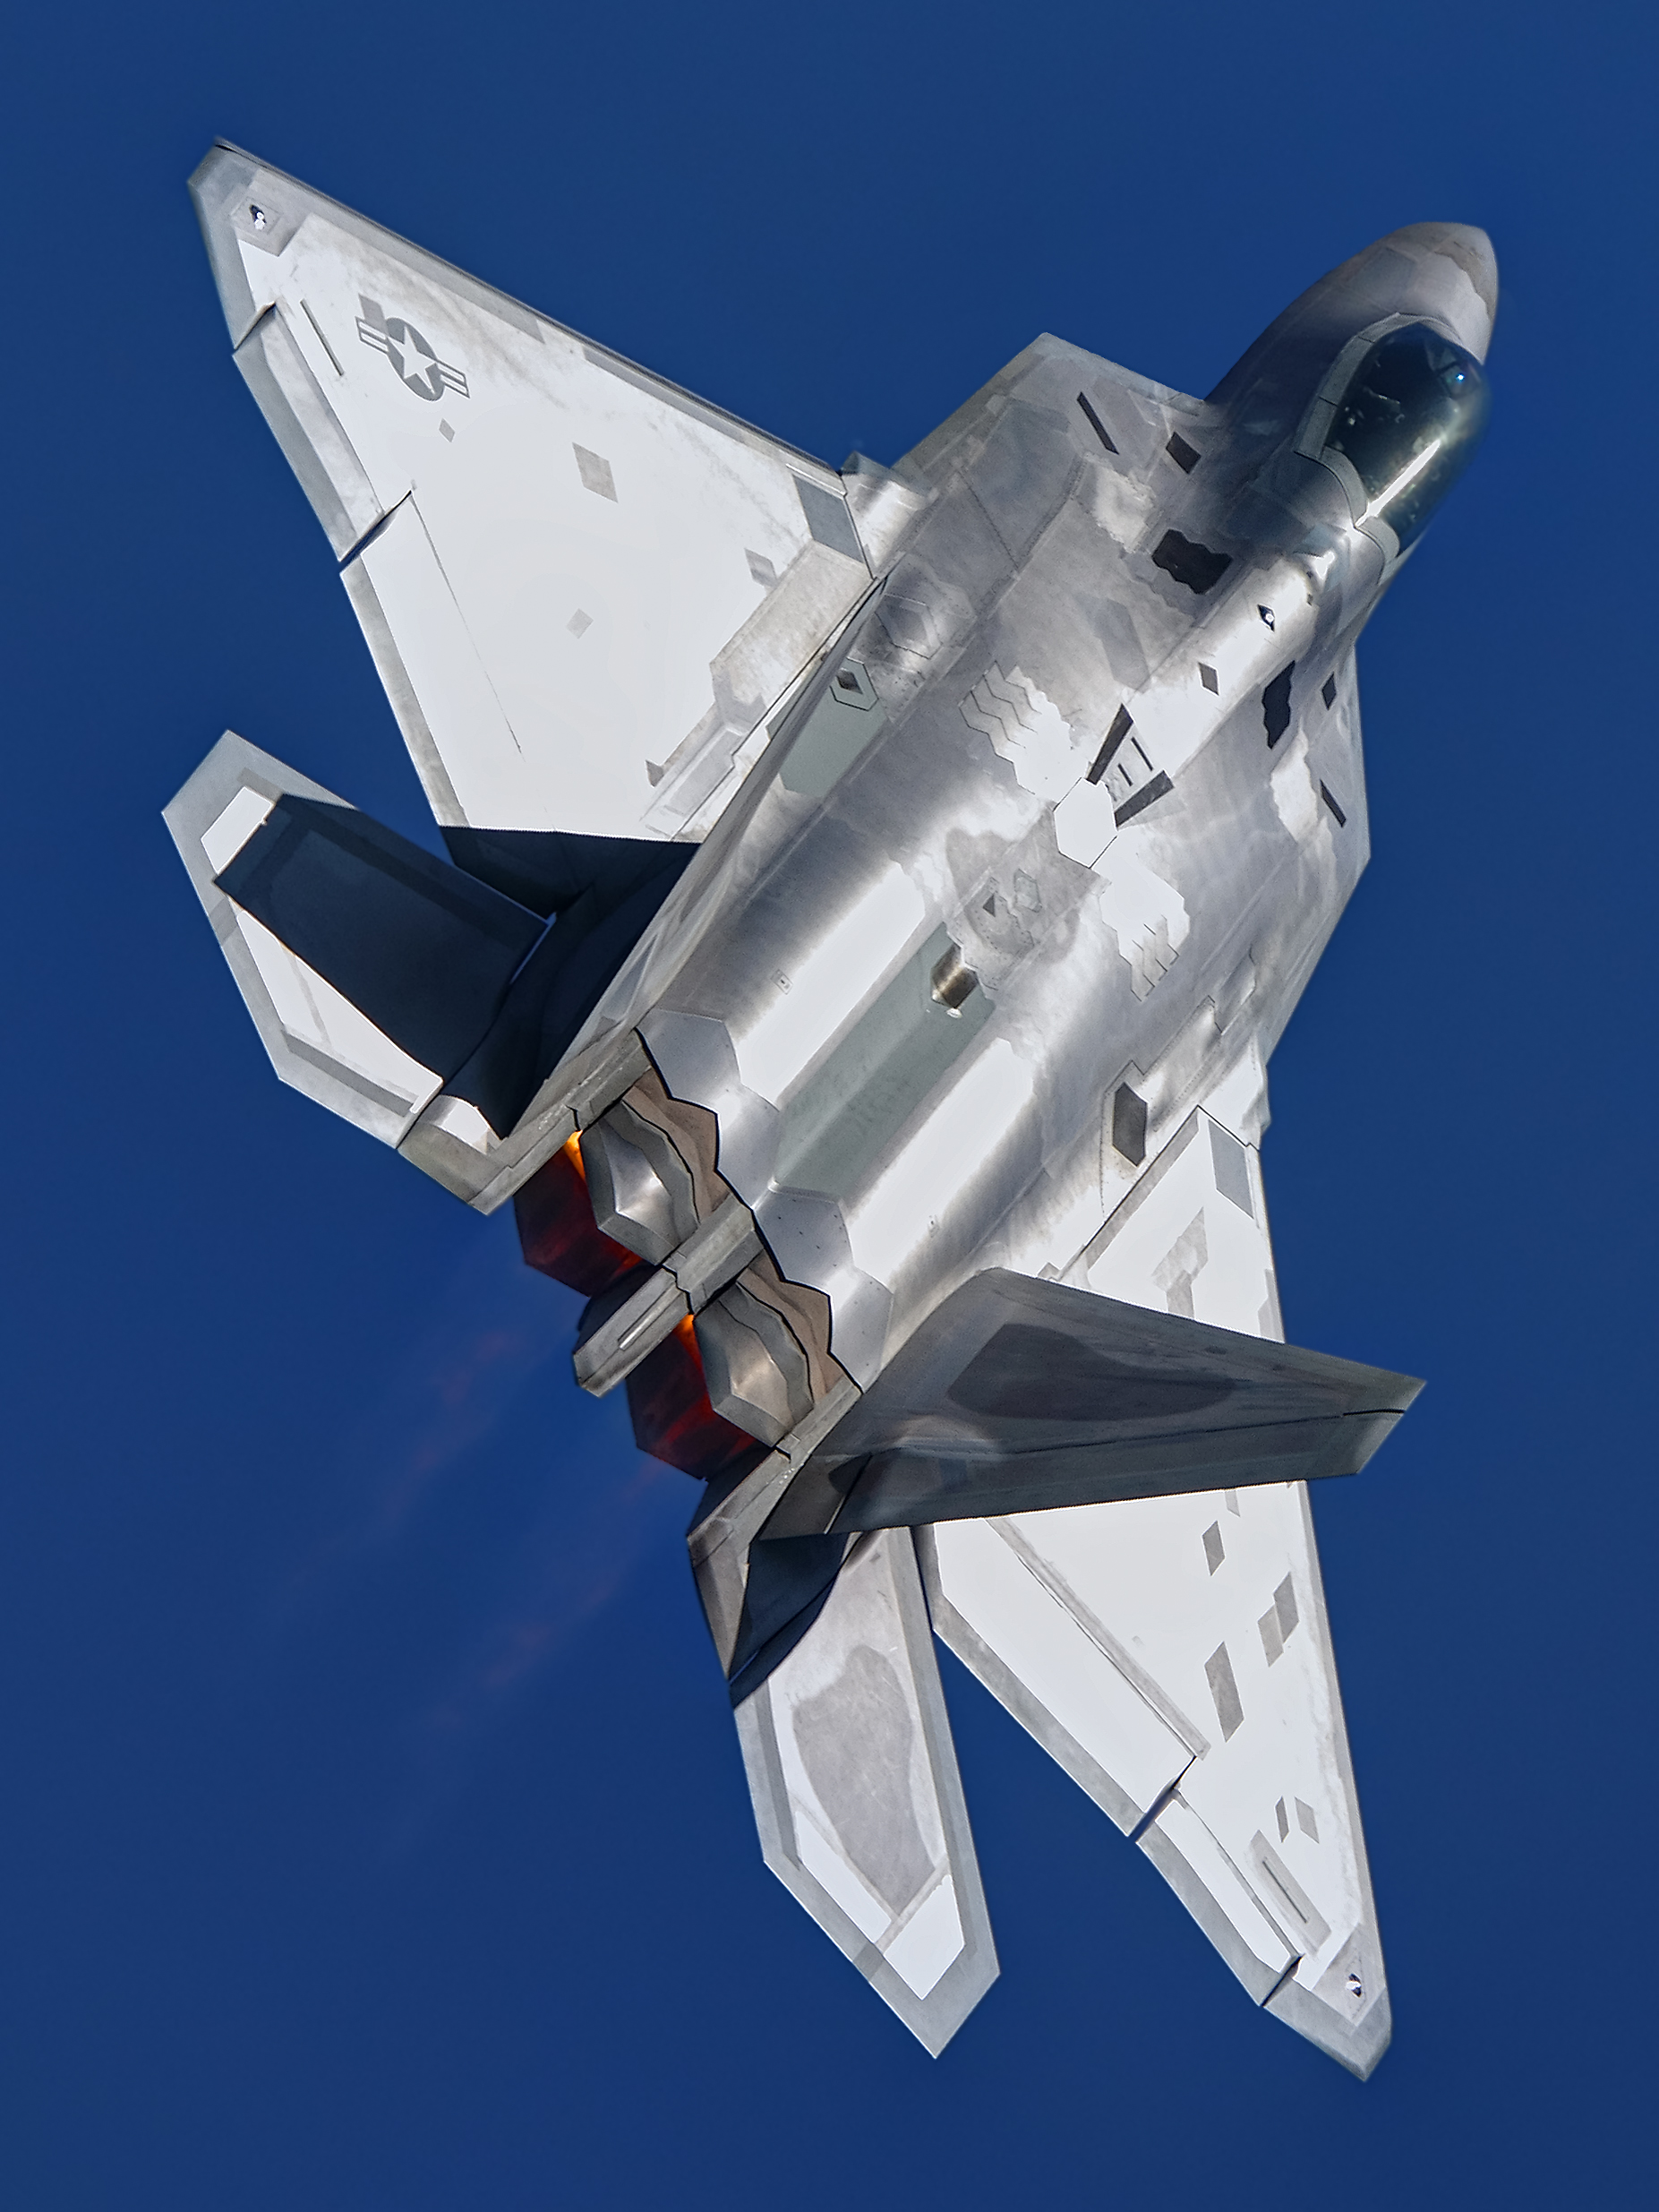 IN RESPONSE TO REPORTS OF SIMULATED F-22 RAPTOR KILLS BY GERMAN